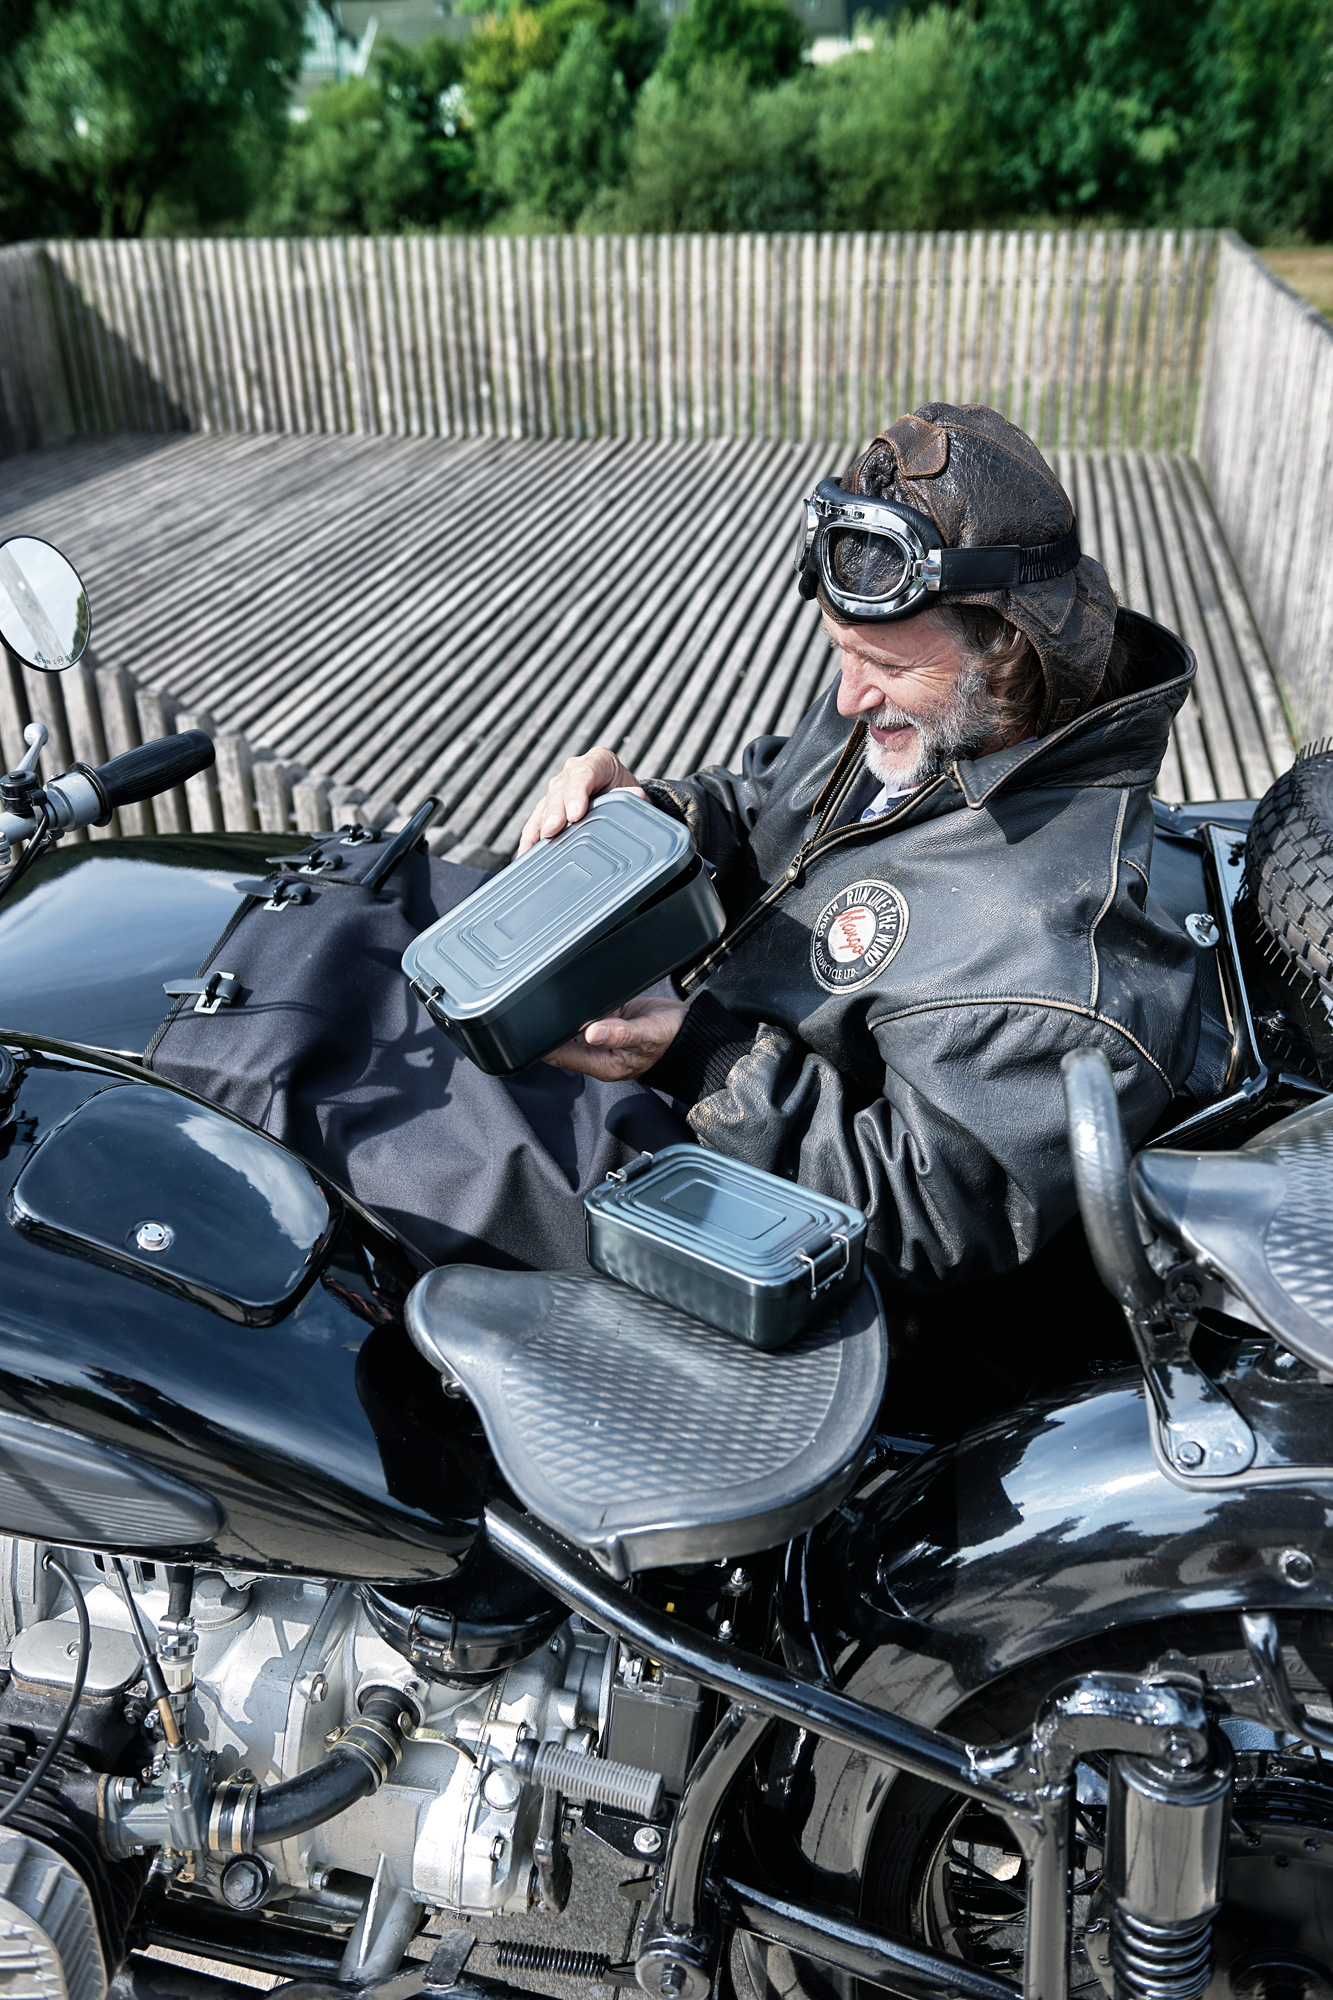 Man sits in old motorbike with a lunch box.